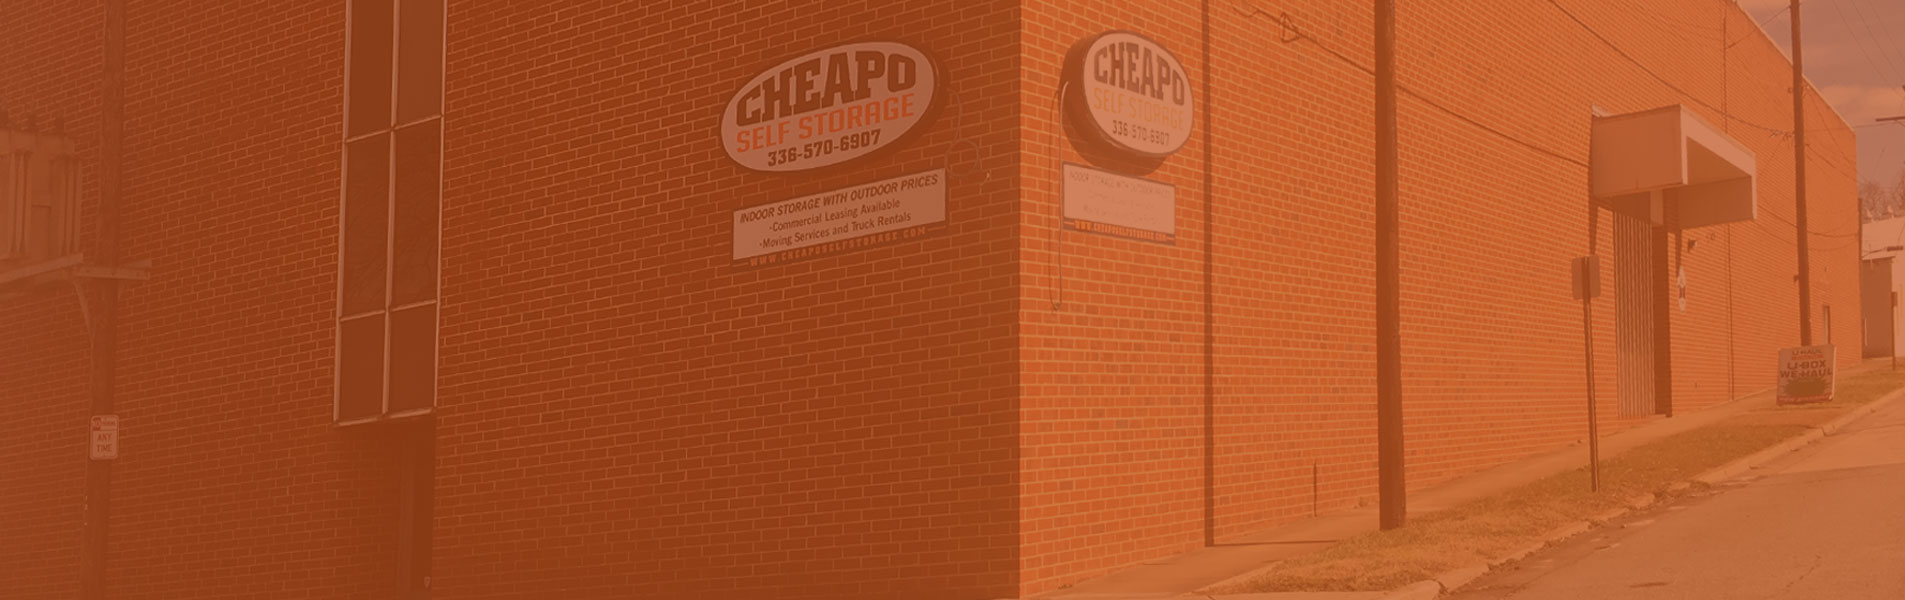 Cheapo Self Storage